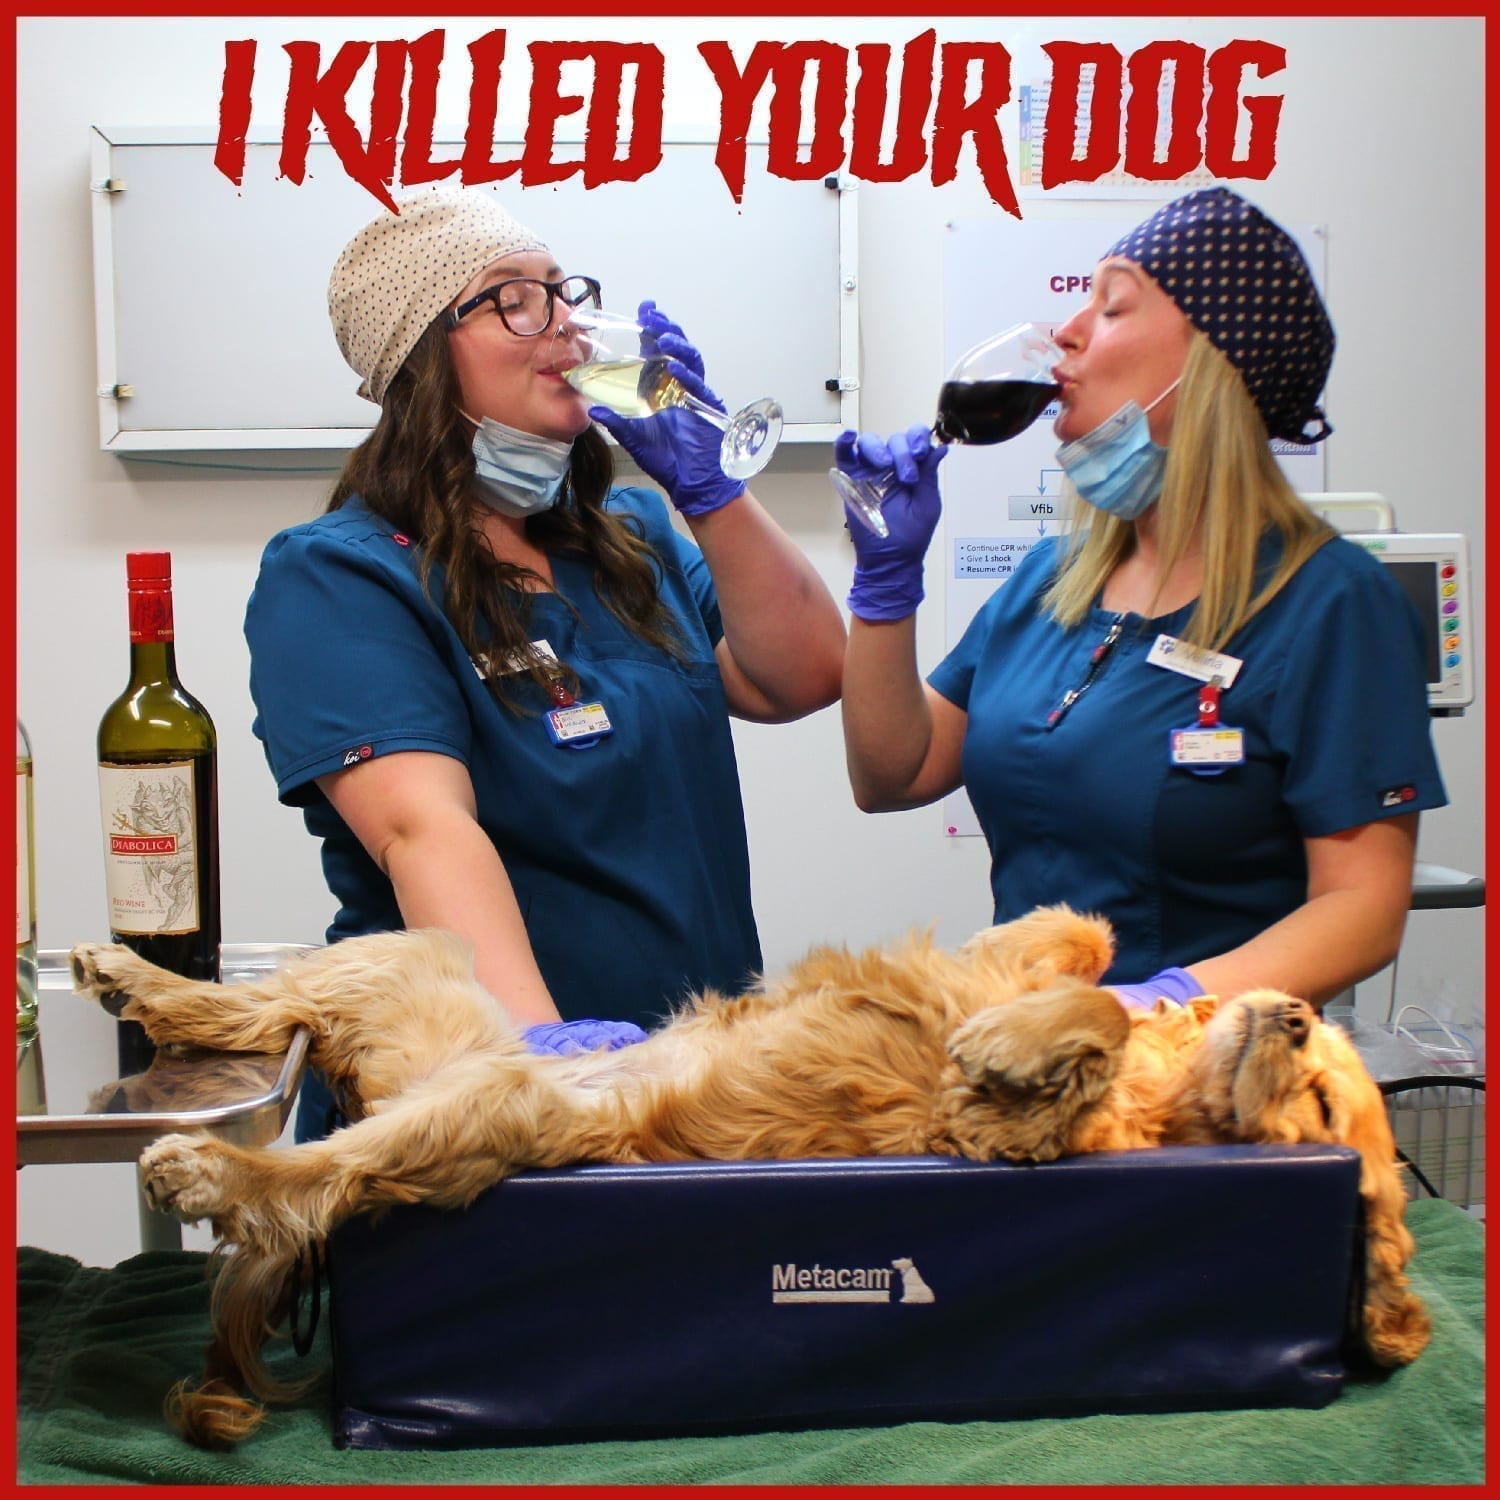 Promo shot from comedy podcast 'I Killed Your Dog'